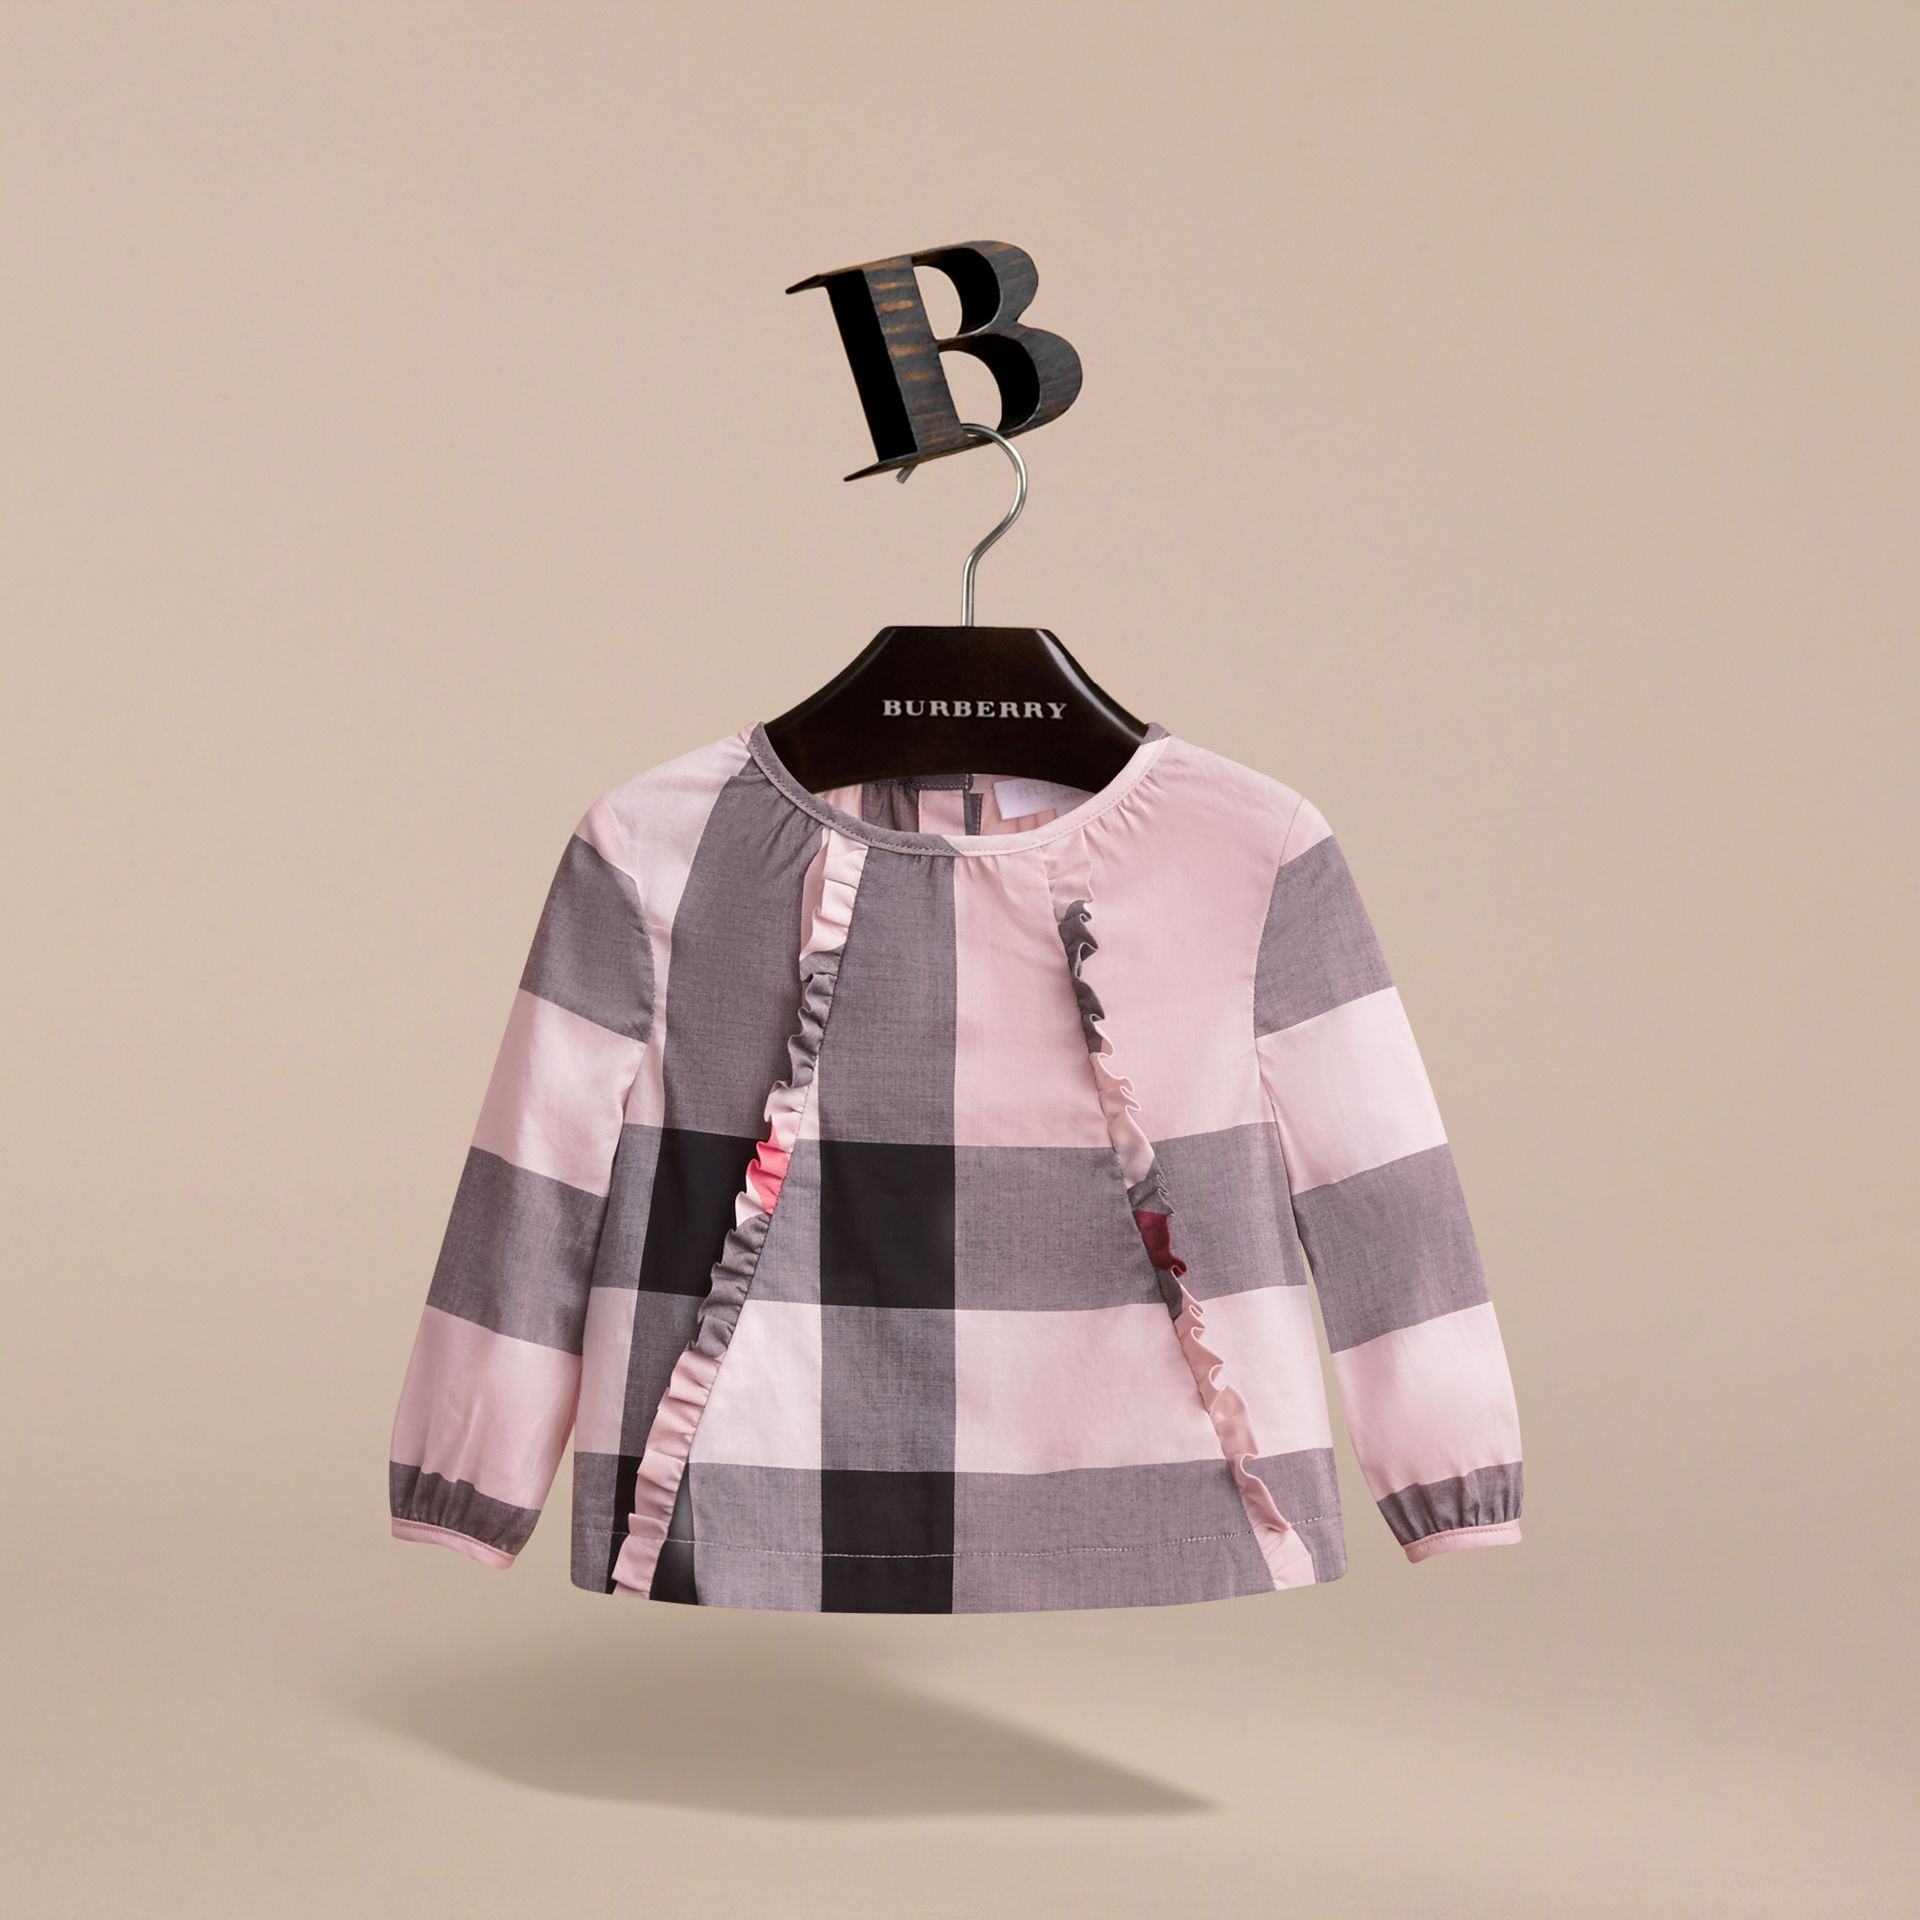 Ruffle Detail Check Cotton Top in Vintage Pink | Burberry Canada - gallery image 3